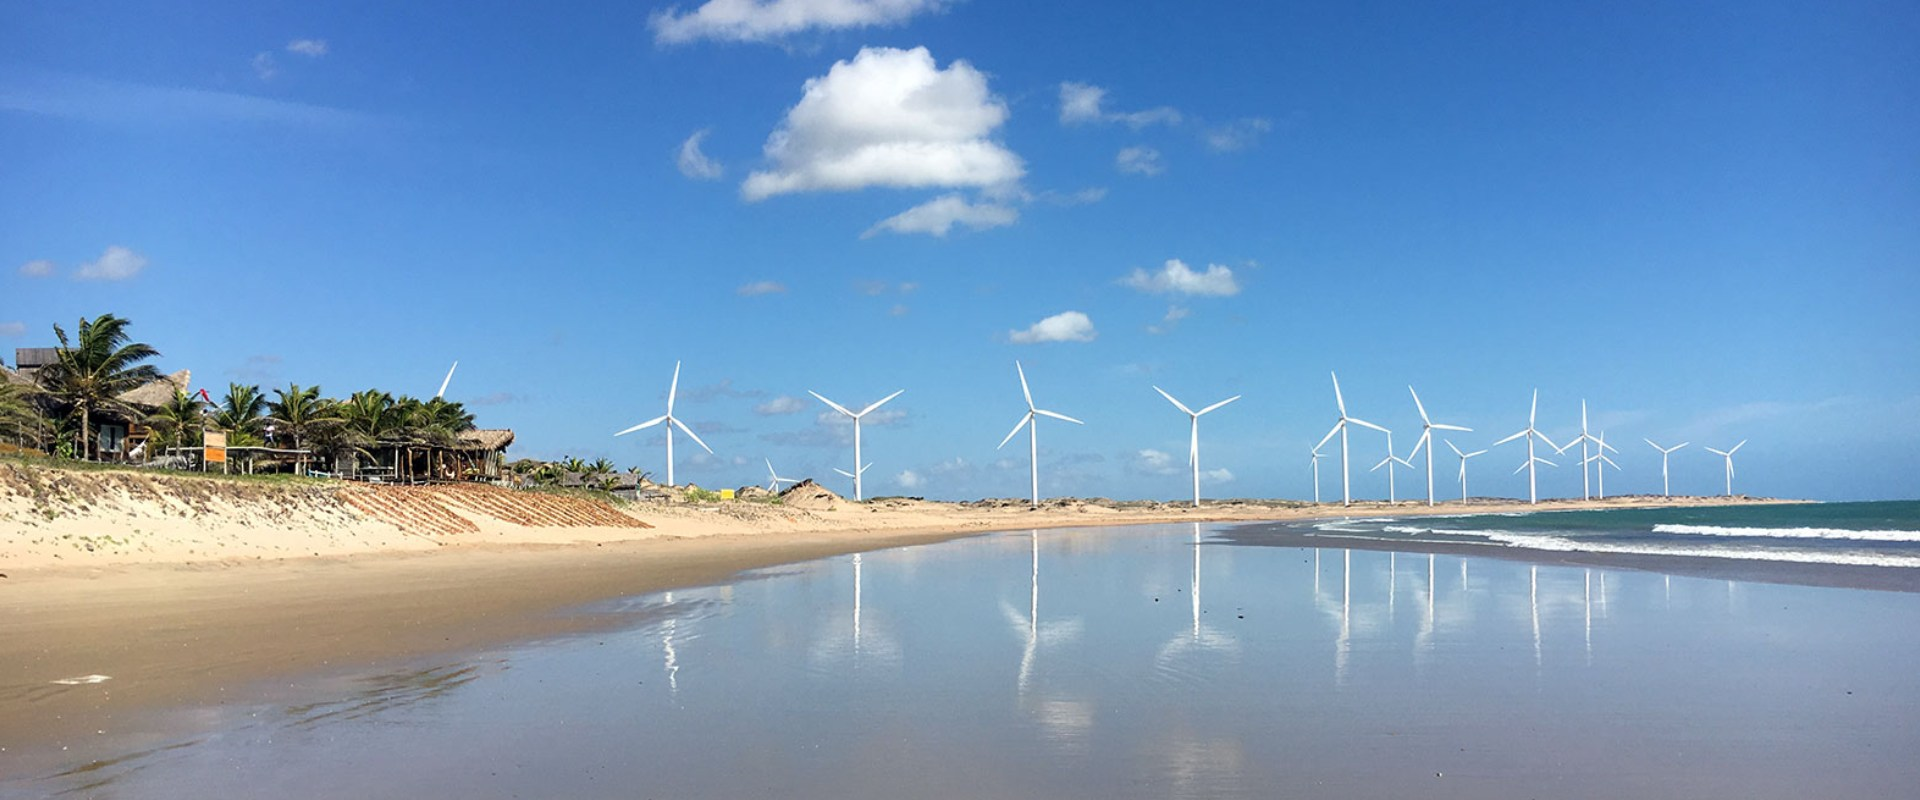 wind mills at the beach